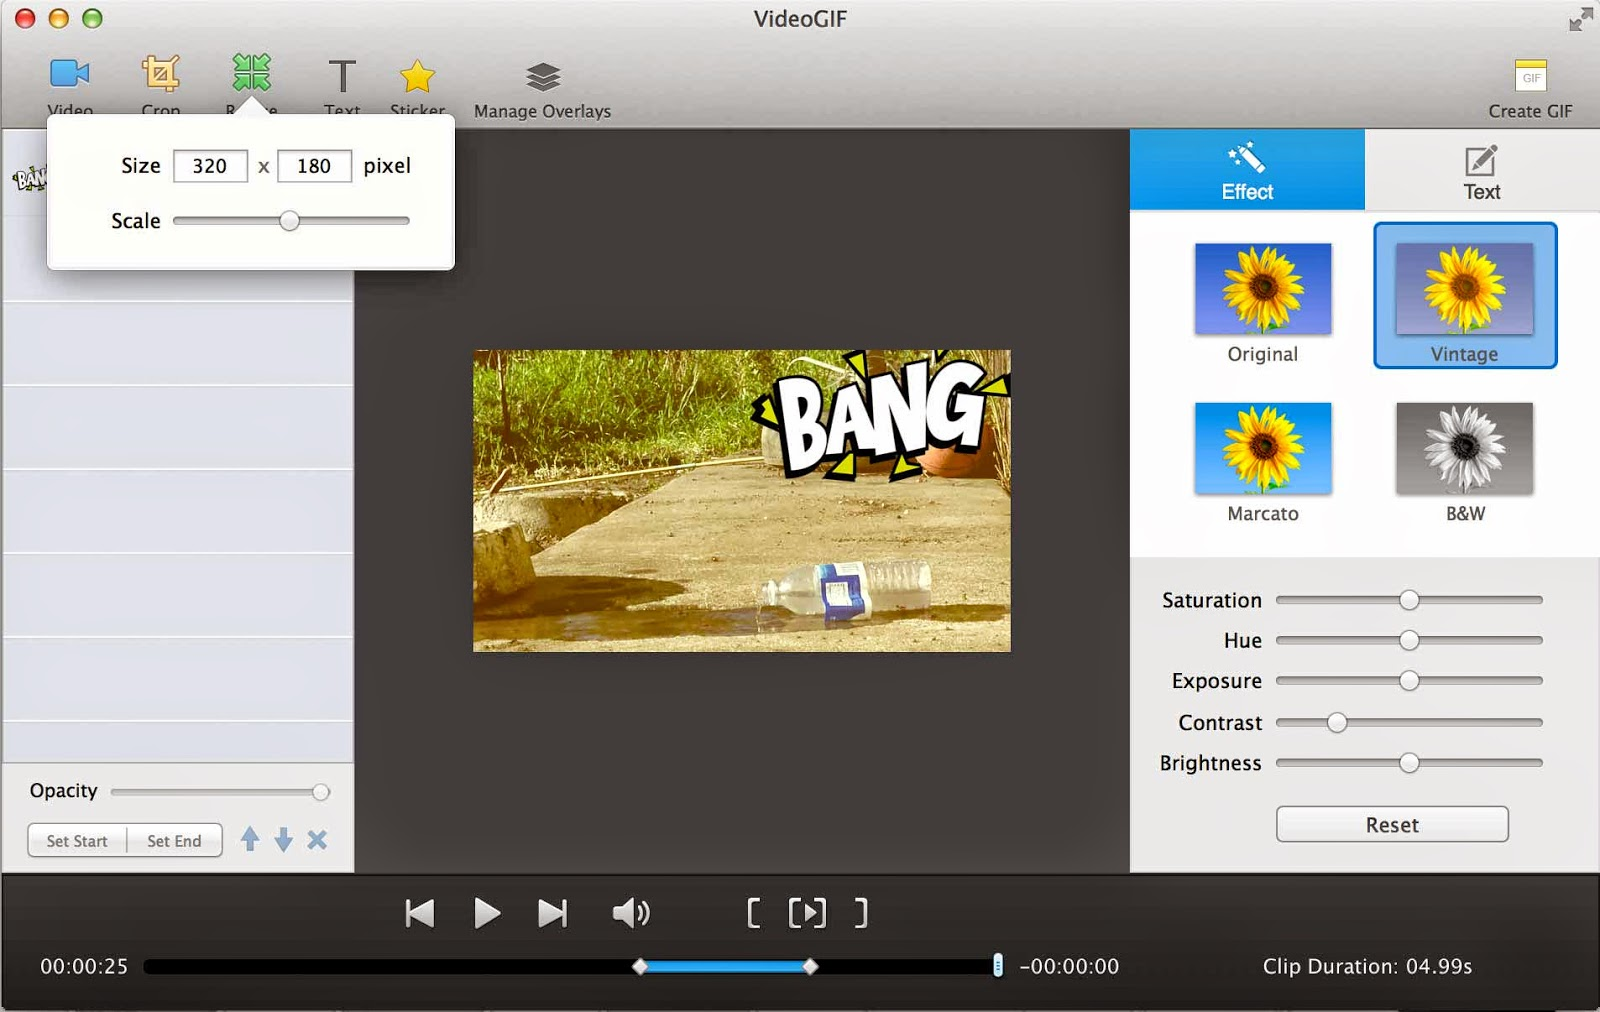 videogif resizing video